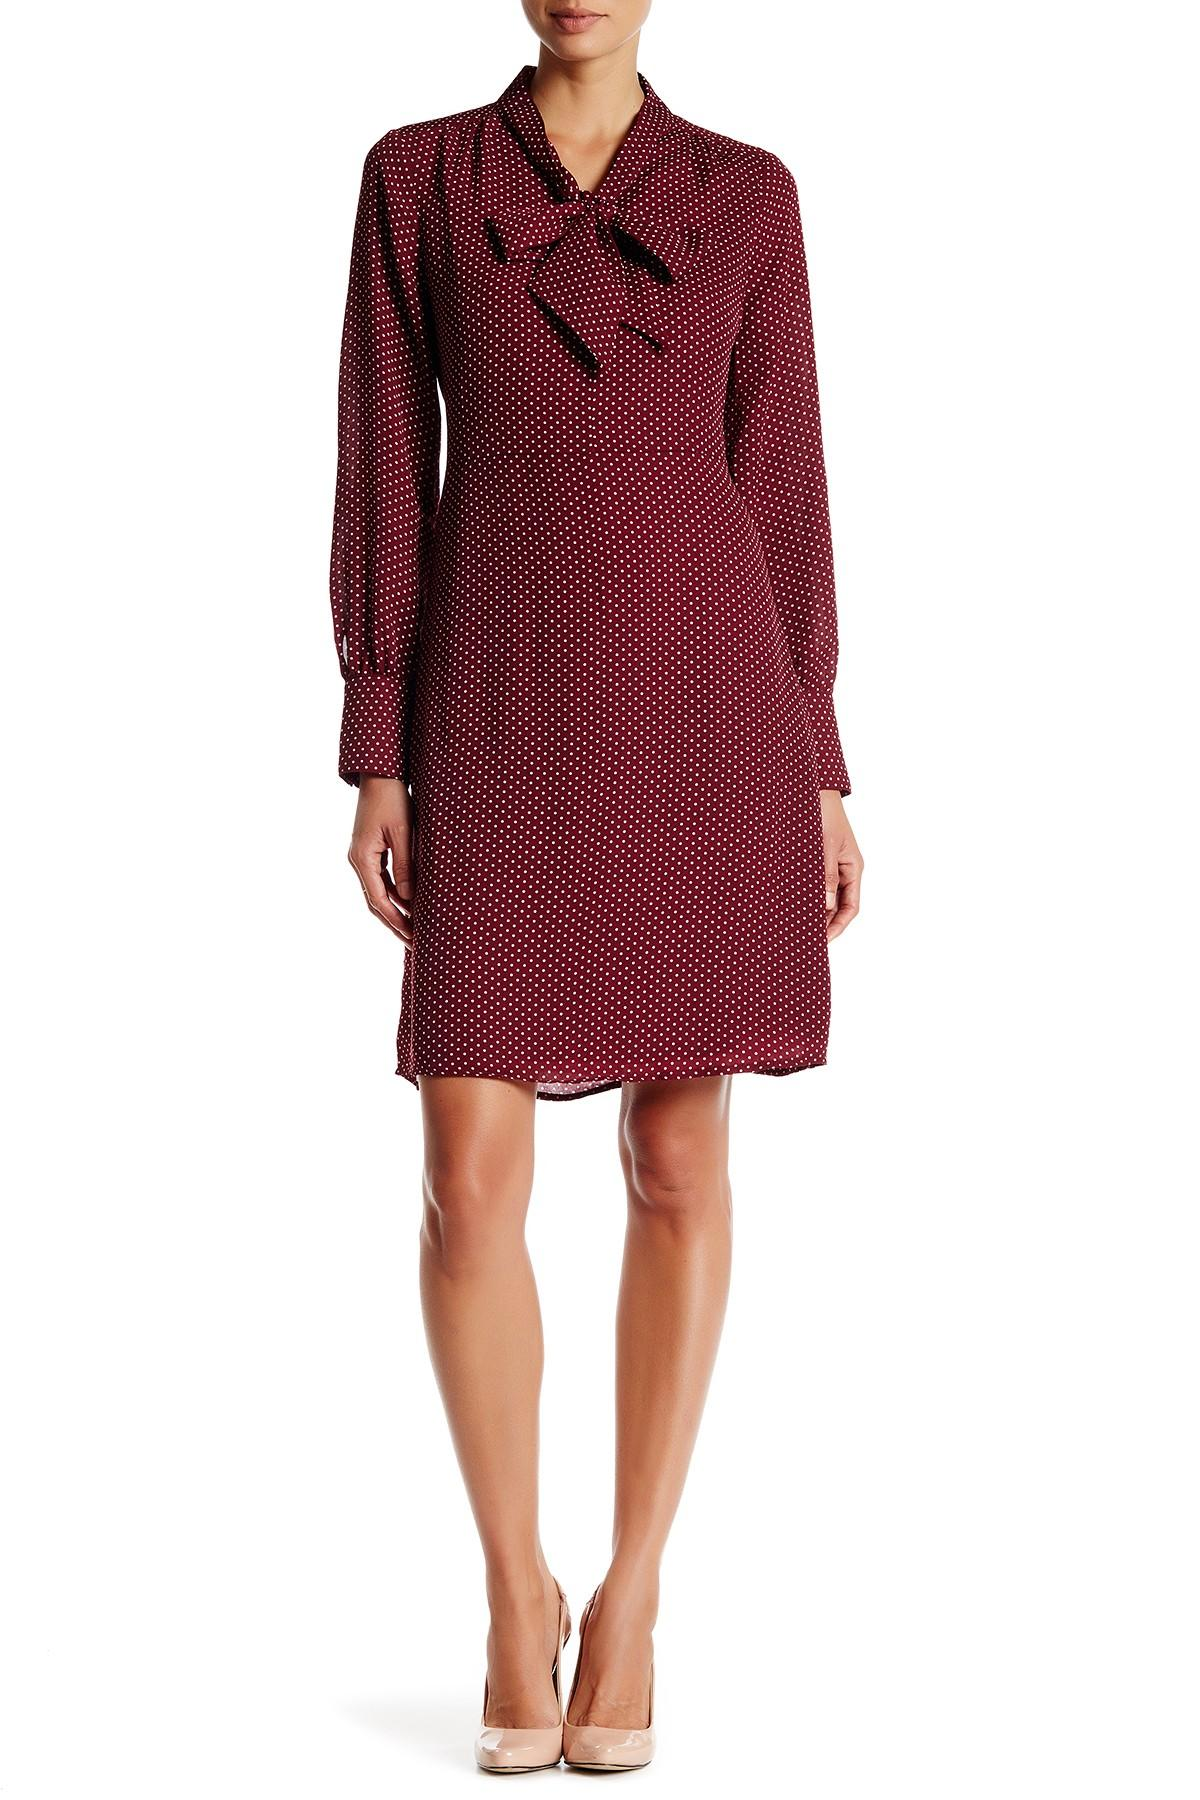 Lands End Dot Bow Dress In Red Lyst